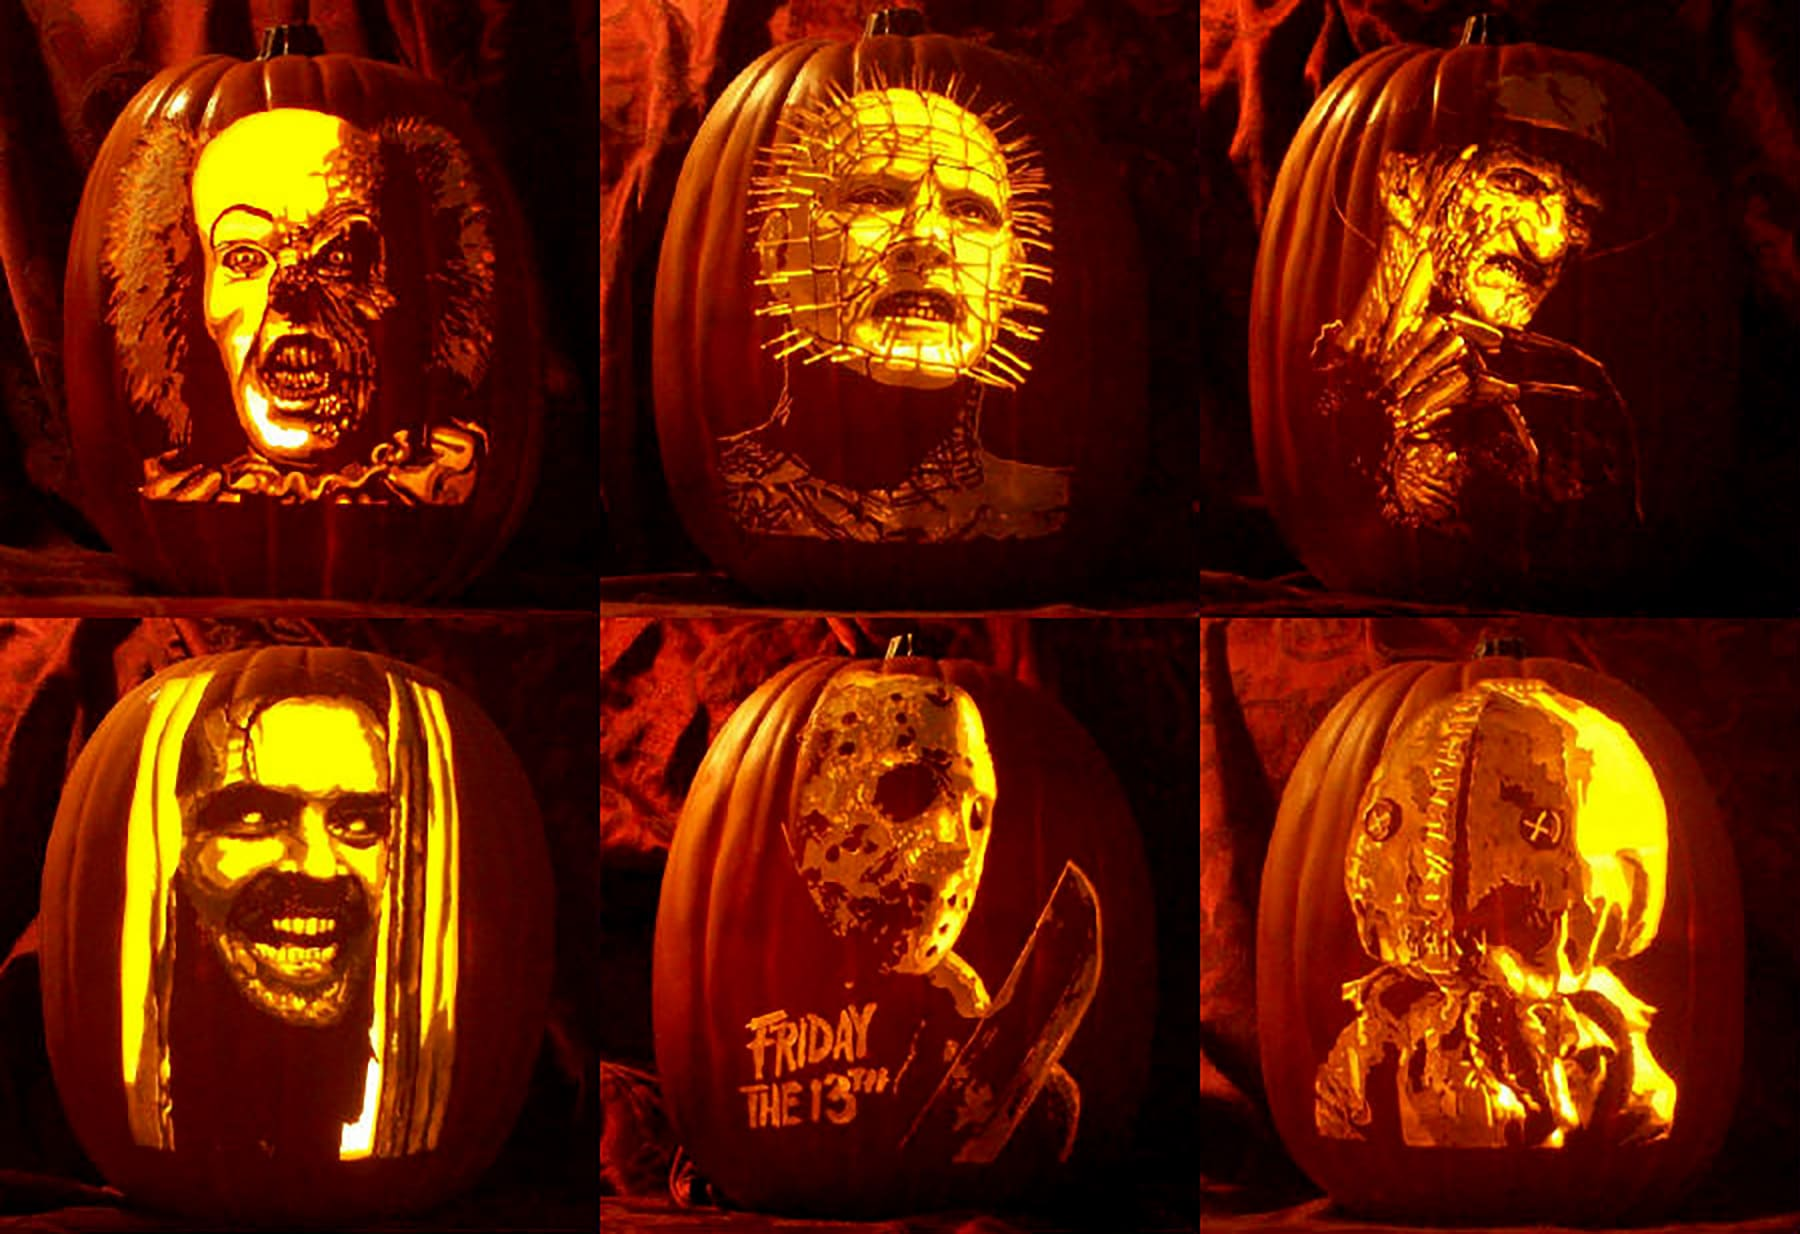 6 foam pumpkins carved with the images of various horror movie characters.